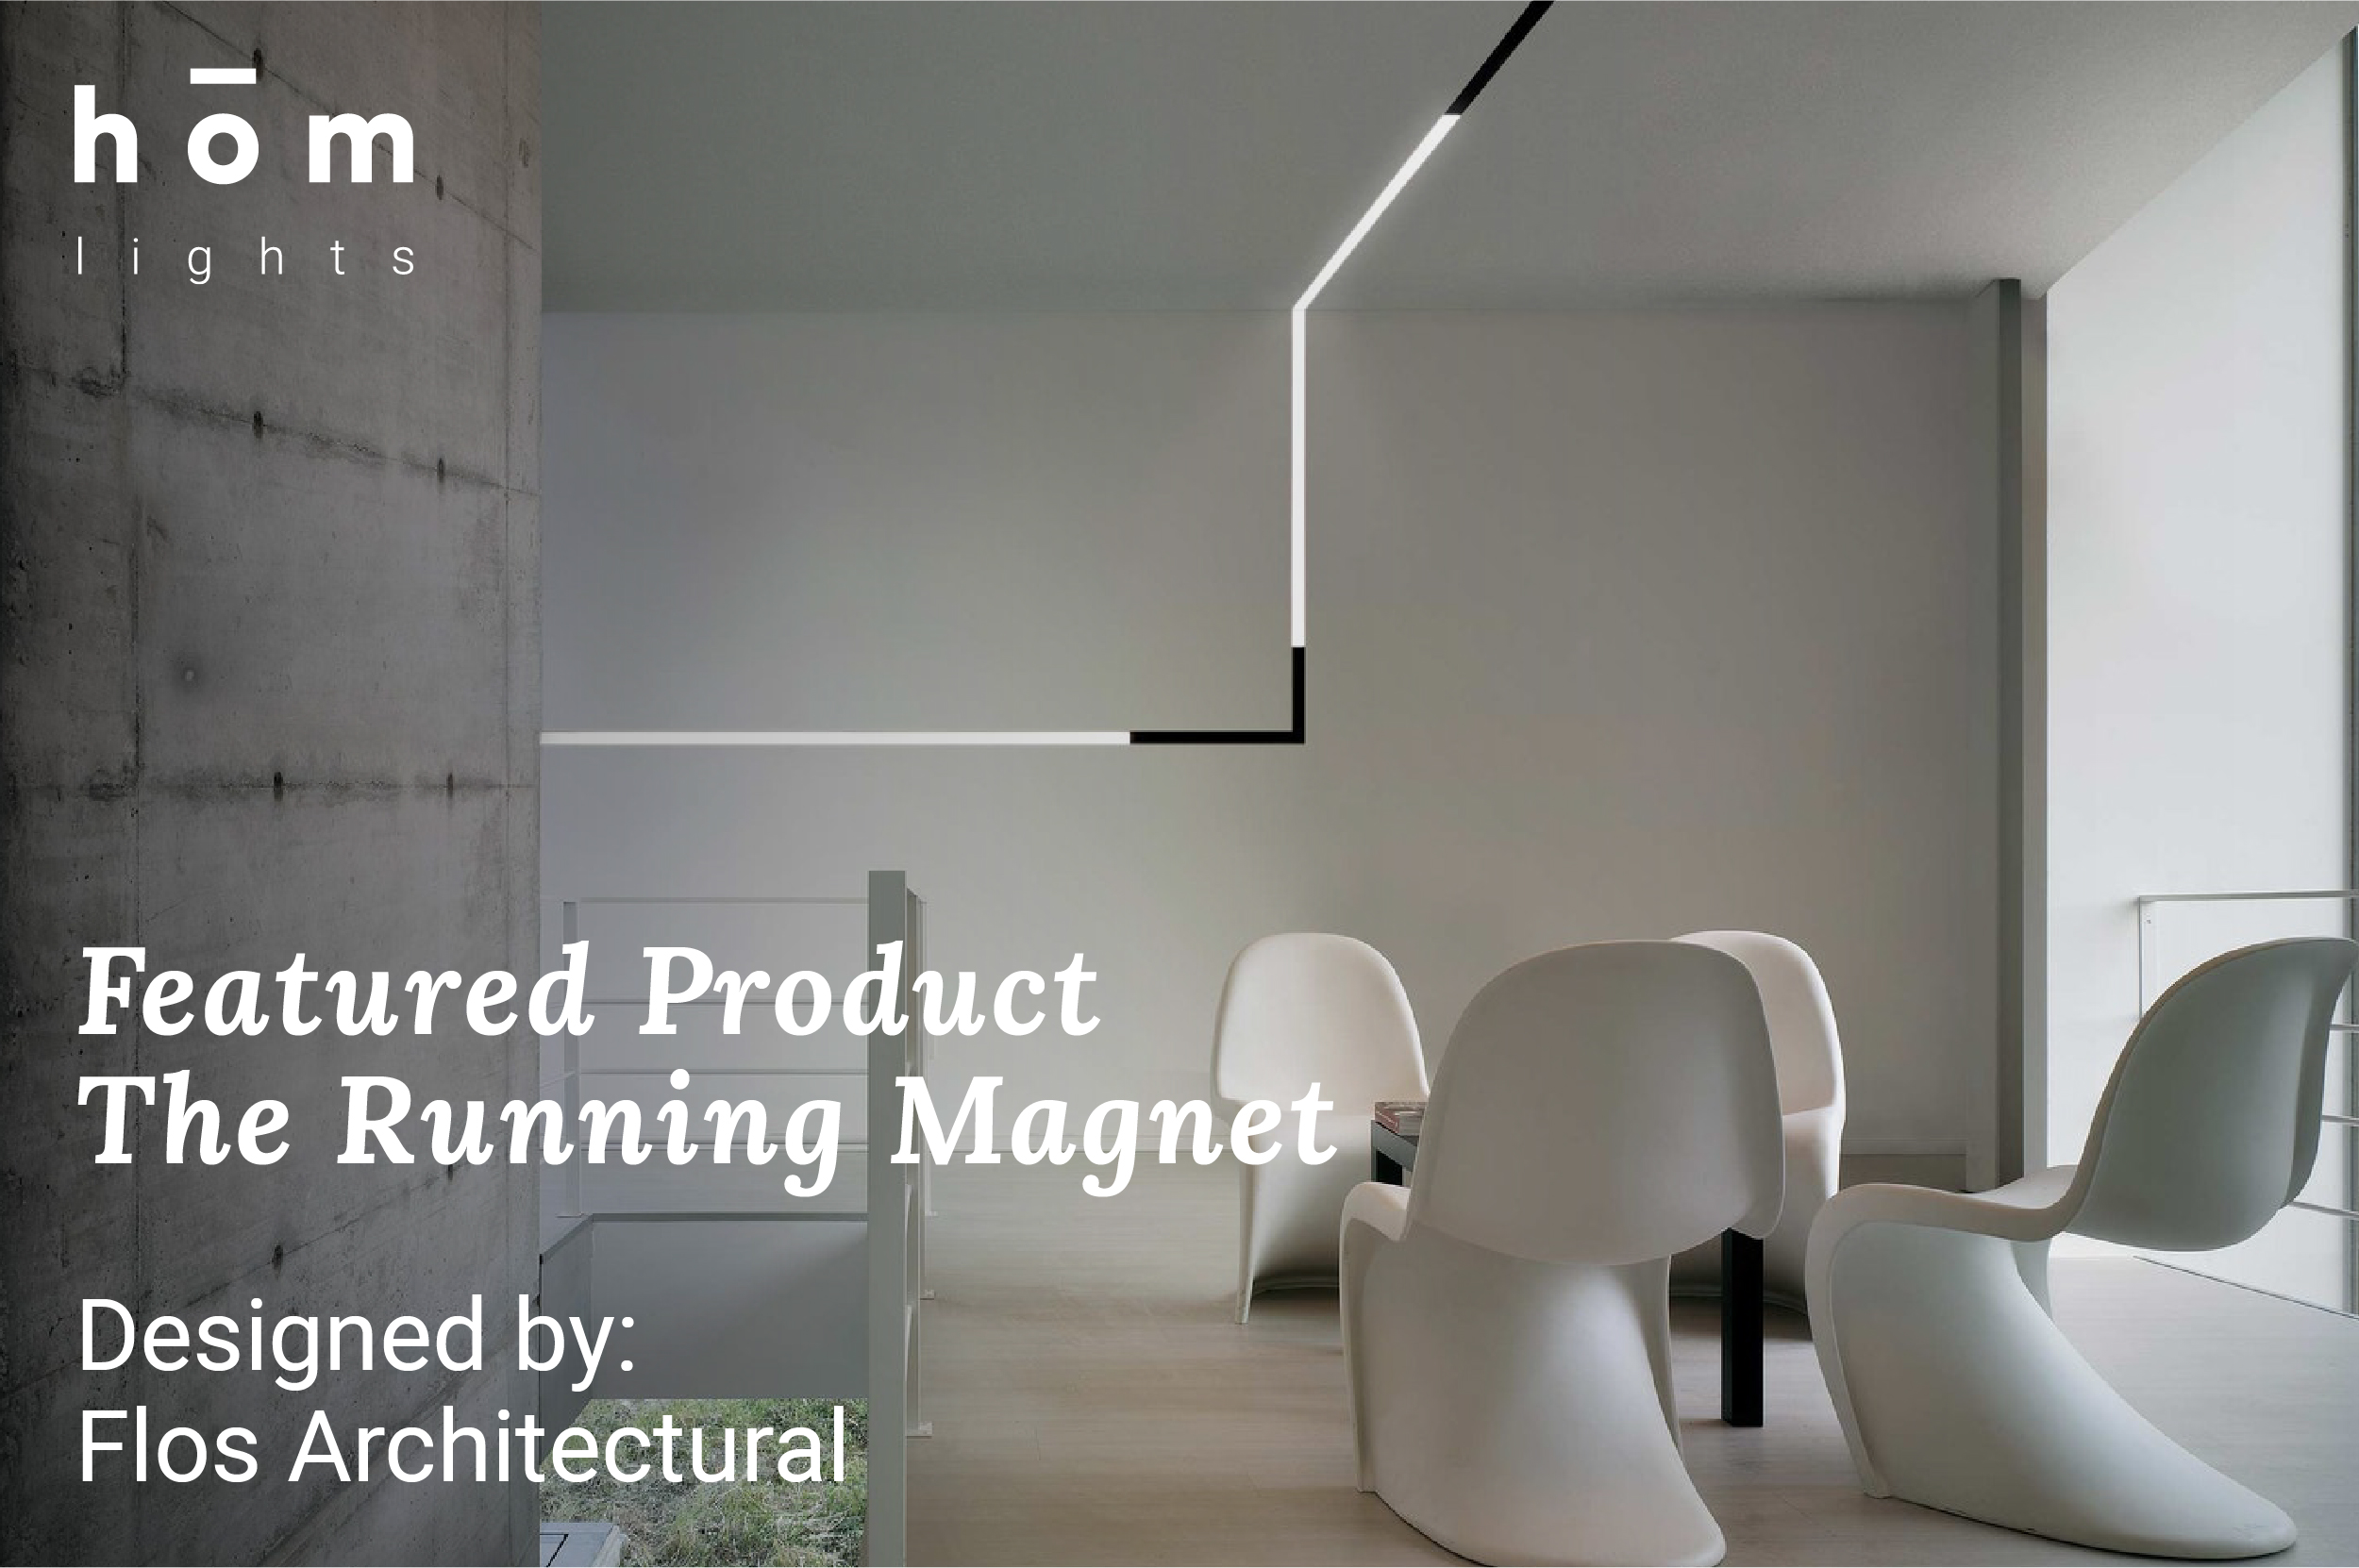 The Running Magnet by Flos available at hom interiors Kuwait - www.homkw.com